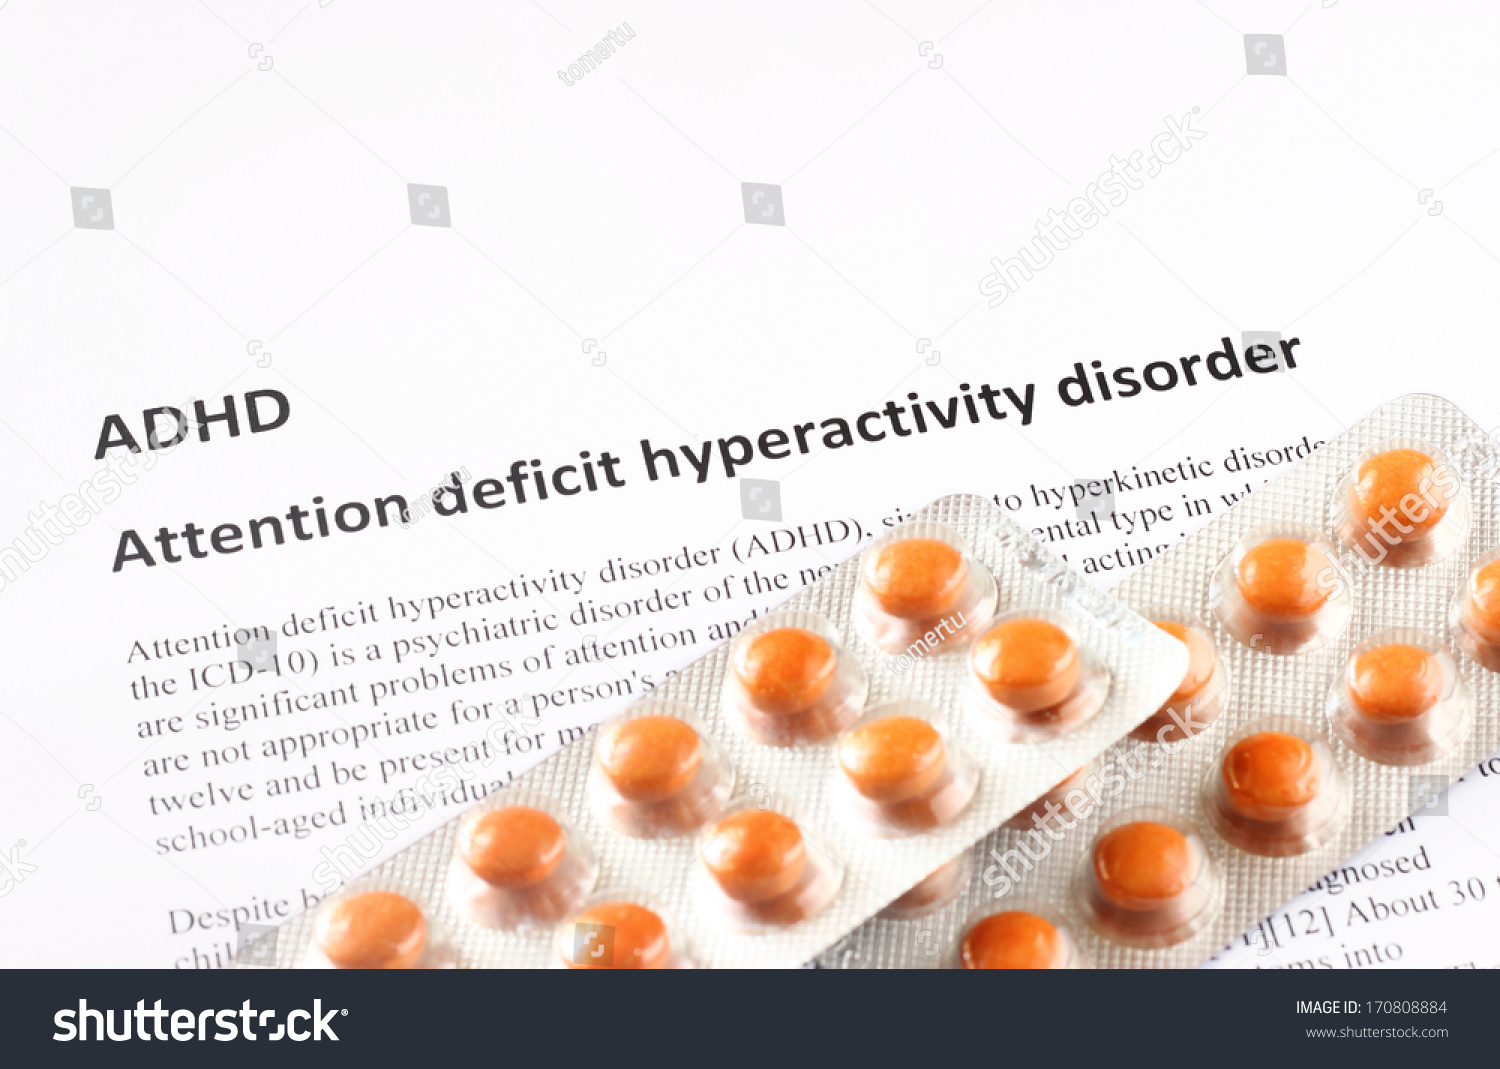 a discussion of the diagnosis and treatments of attention deficit hyperactivity Childhood adhd symptoms include impulsivity, inattention, and distractibility   what tests do specialists use to diagnose adhd in children  these should  be discussed with the treating doctor so that the right interventions can be.